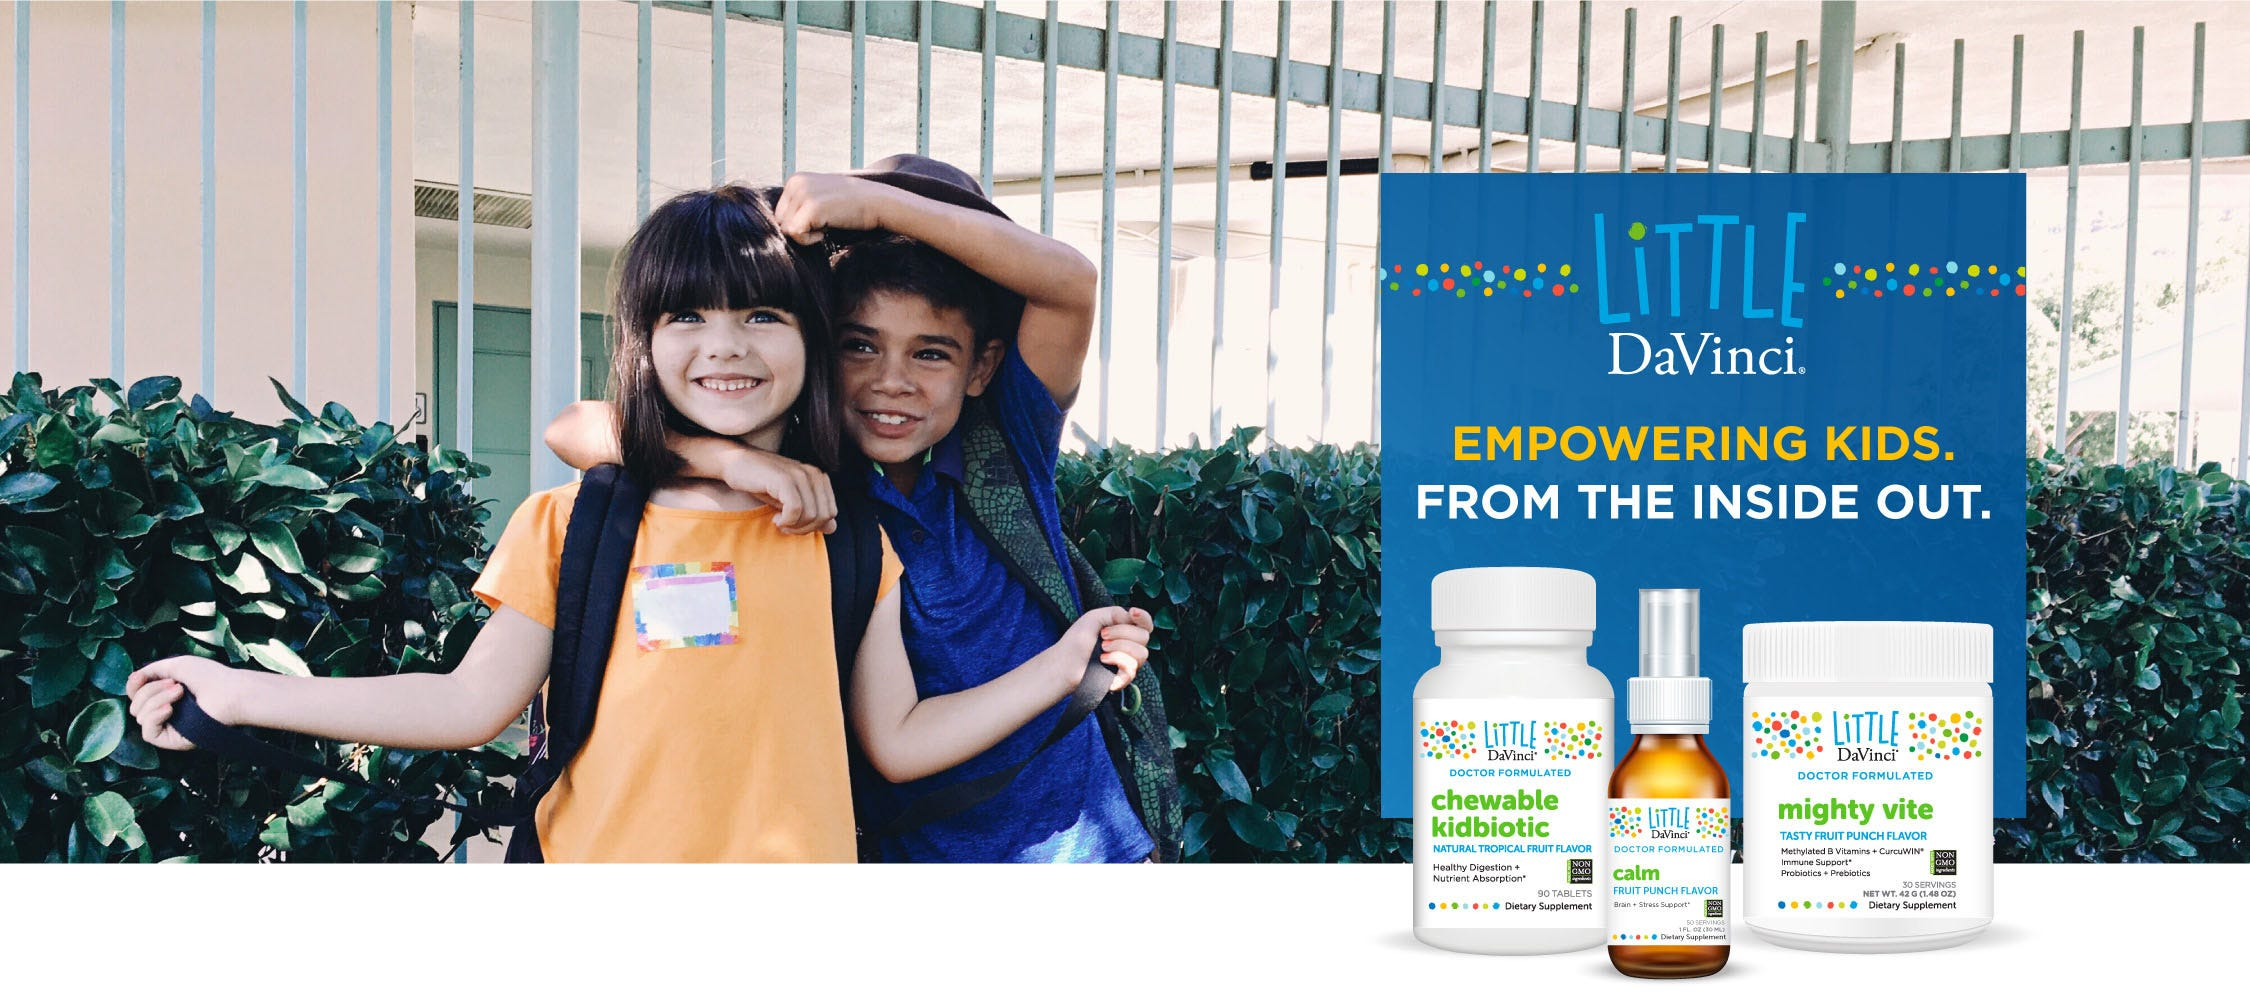 Children behind bottles of Little DaVinci supplements